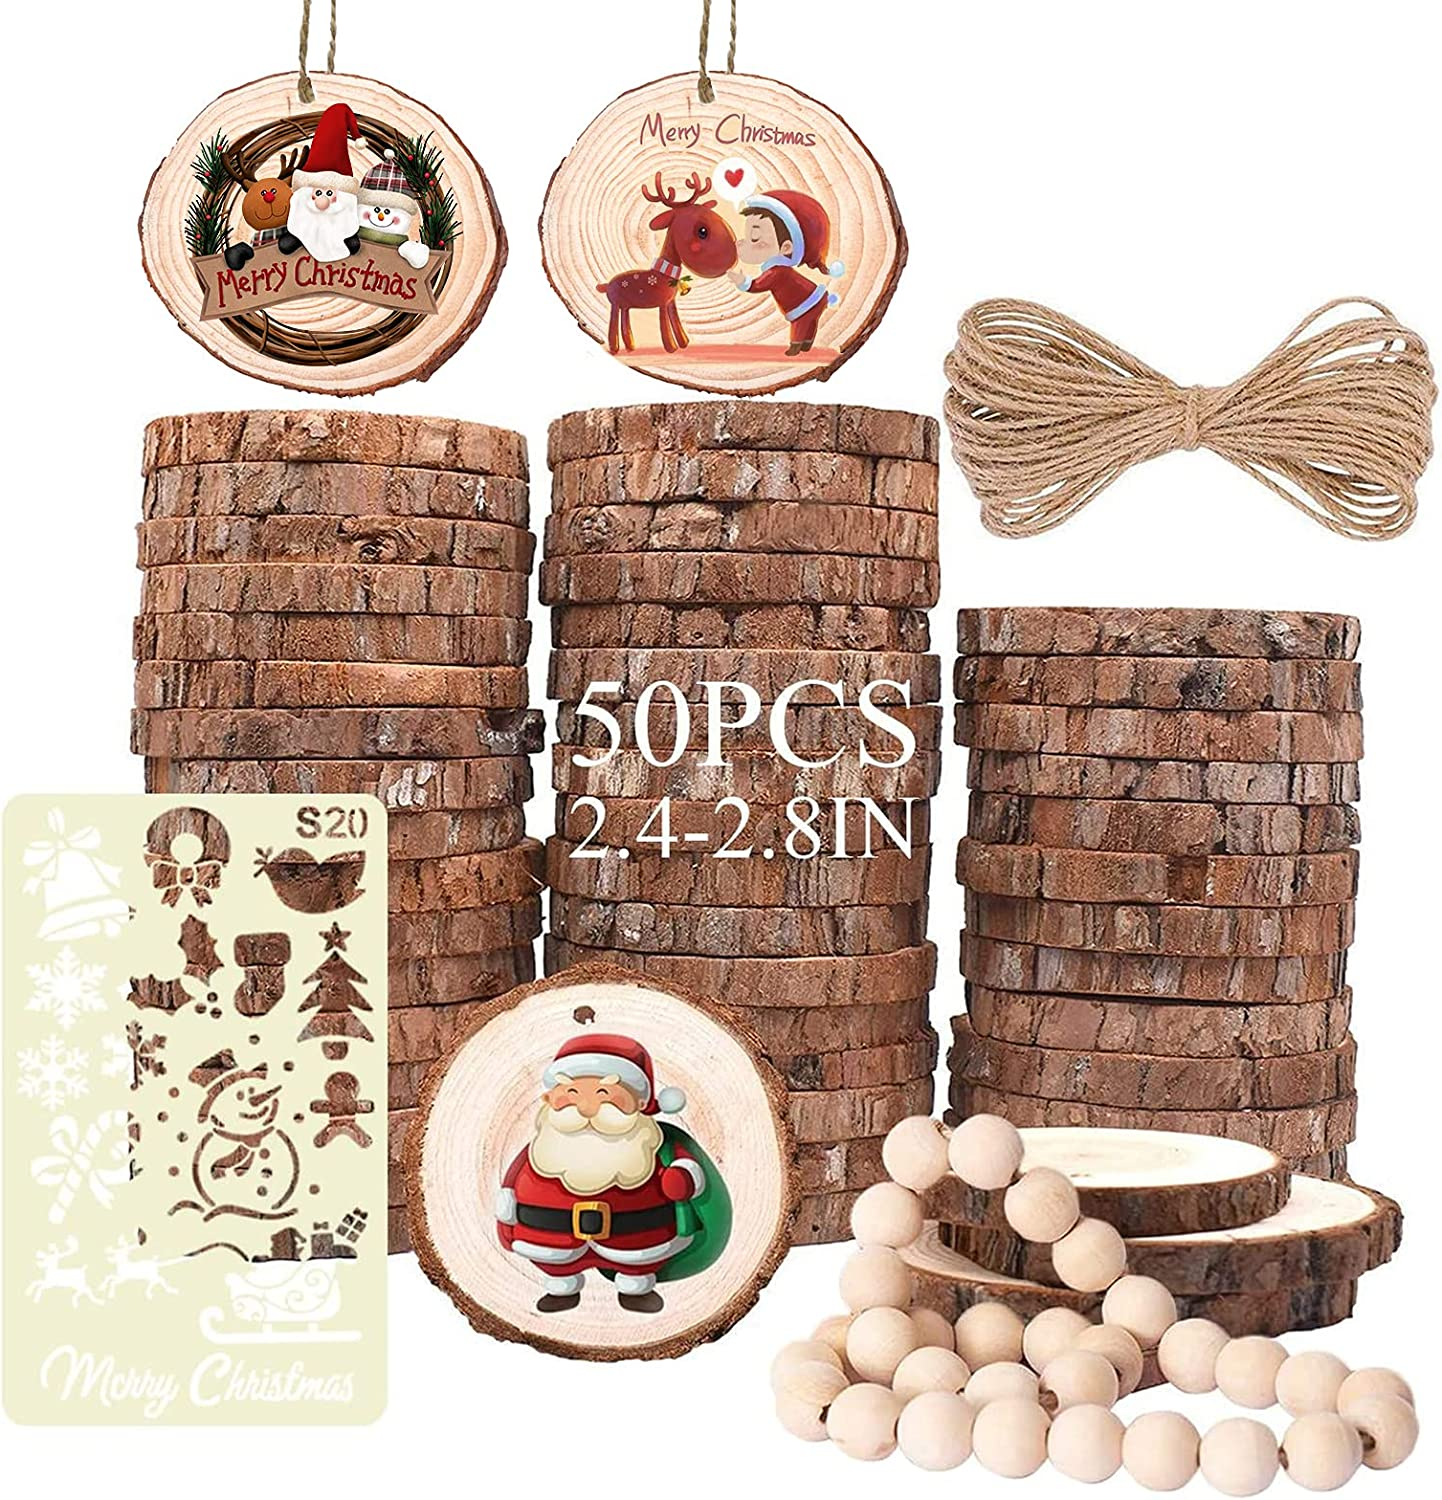 Wood Slices Free shipping on posting reviews 50 Al sold out. Pack 2.4-2.8''Unfinished for Cra Ornaments Wooden